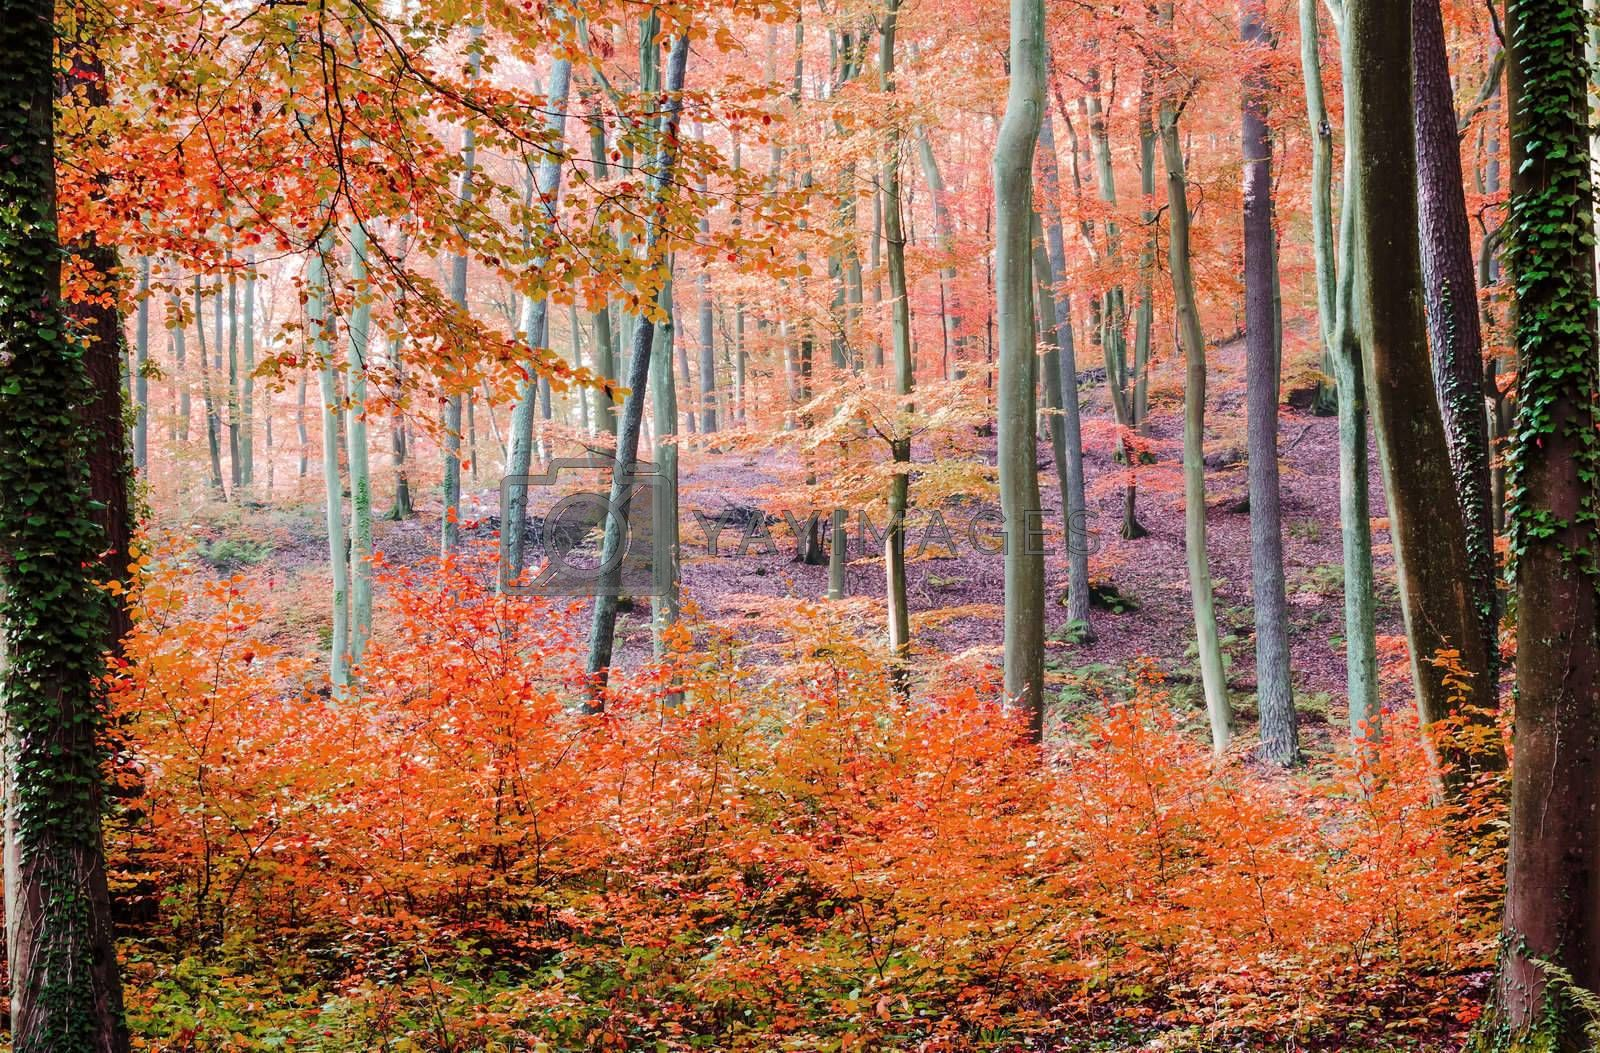 forest with vibrant fall colors